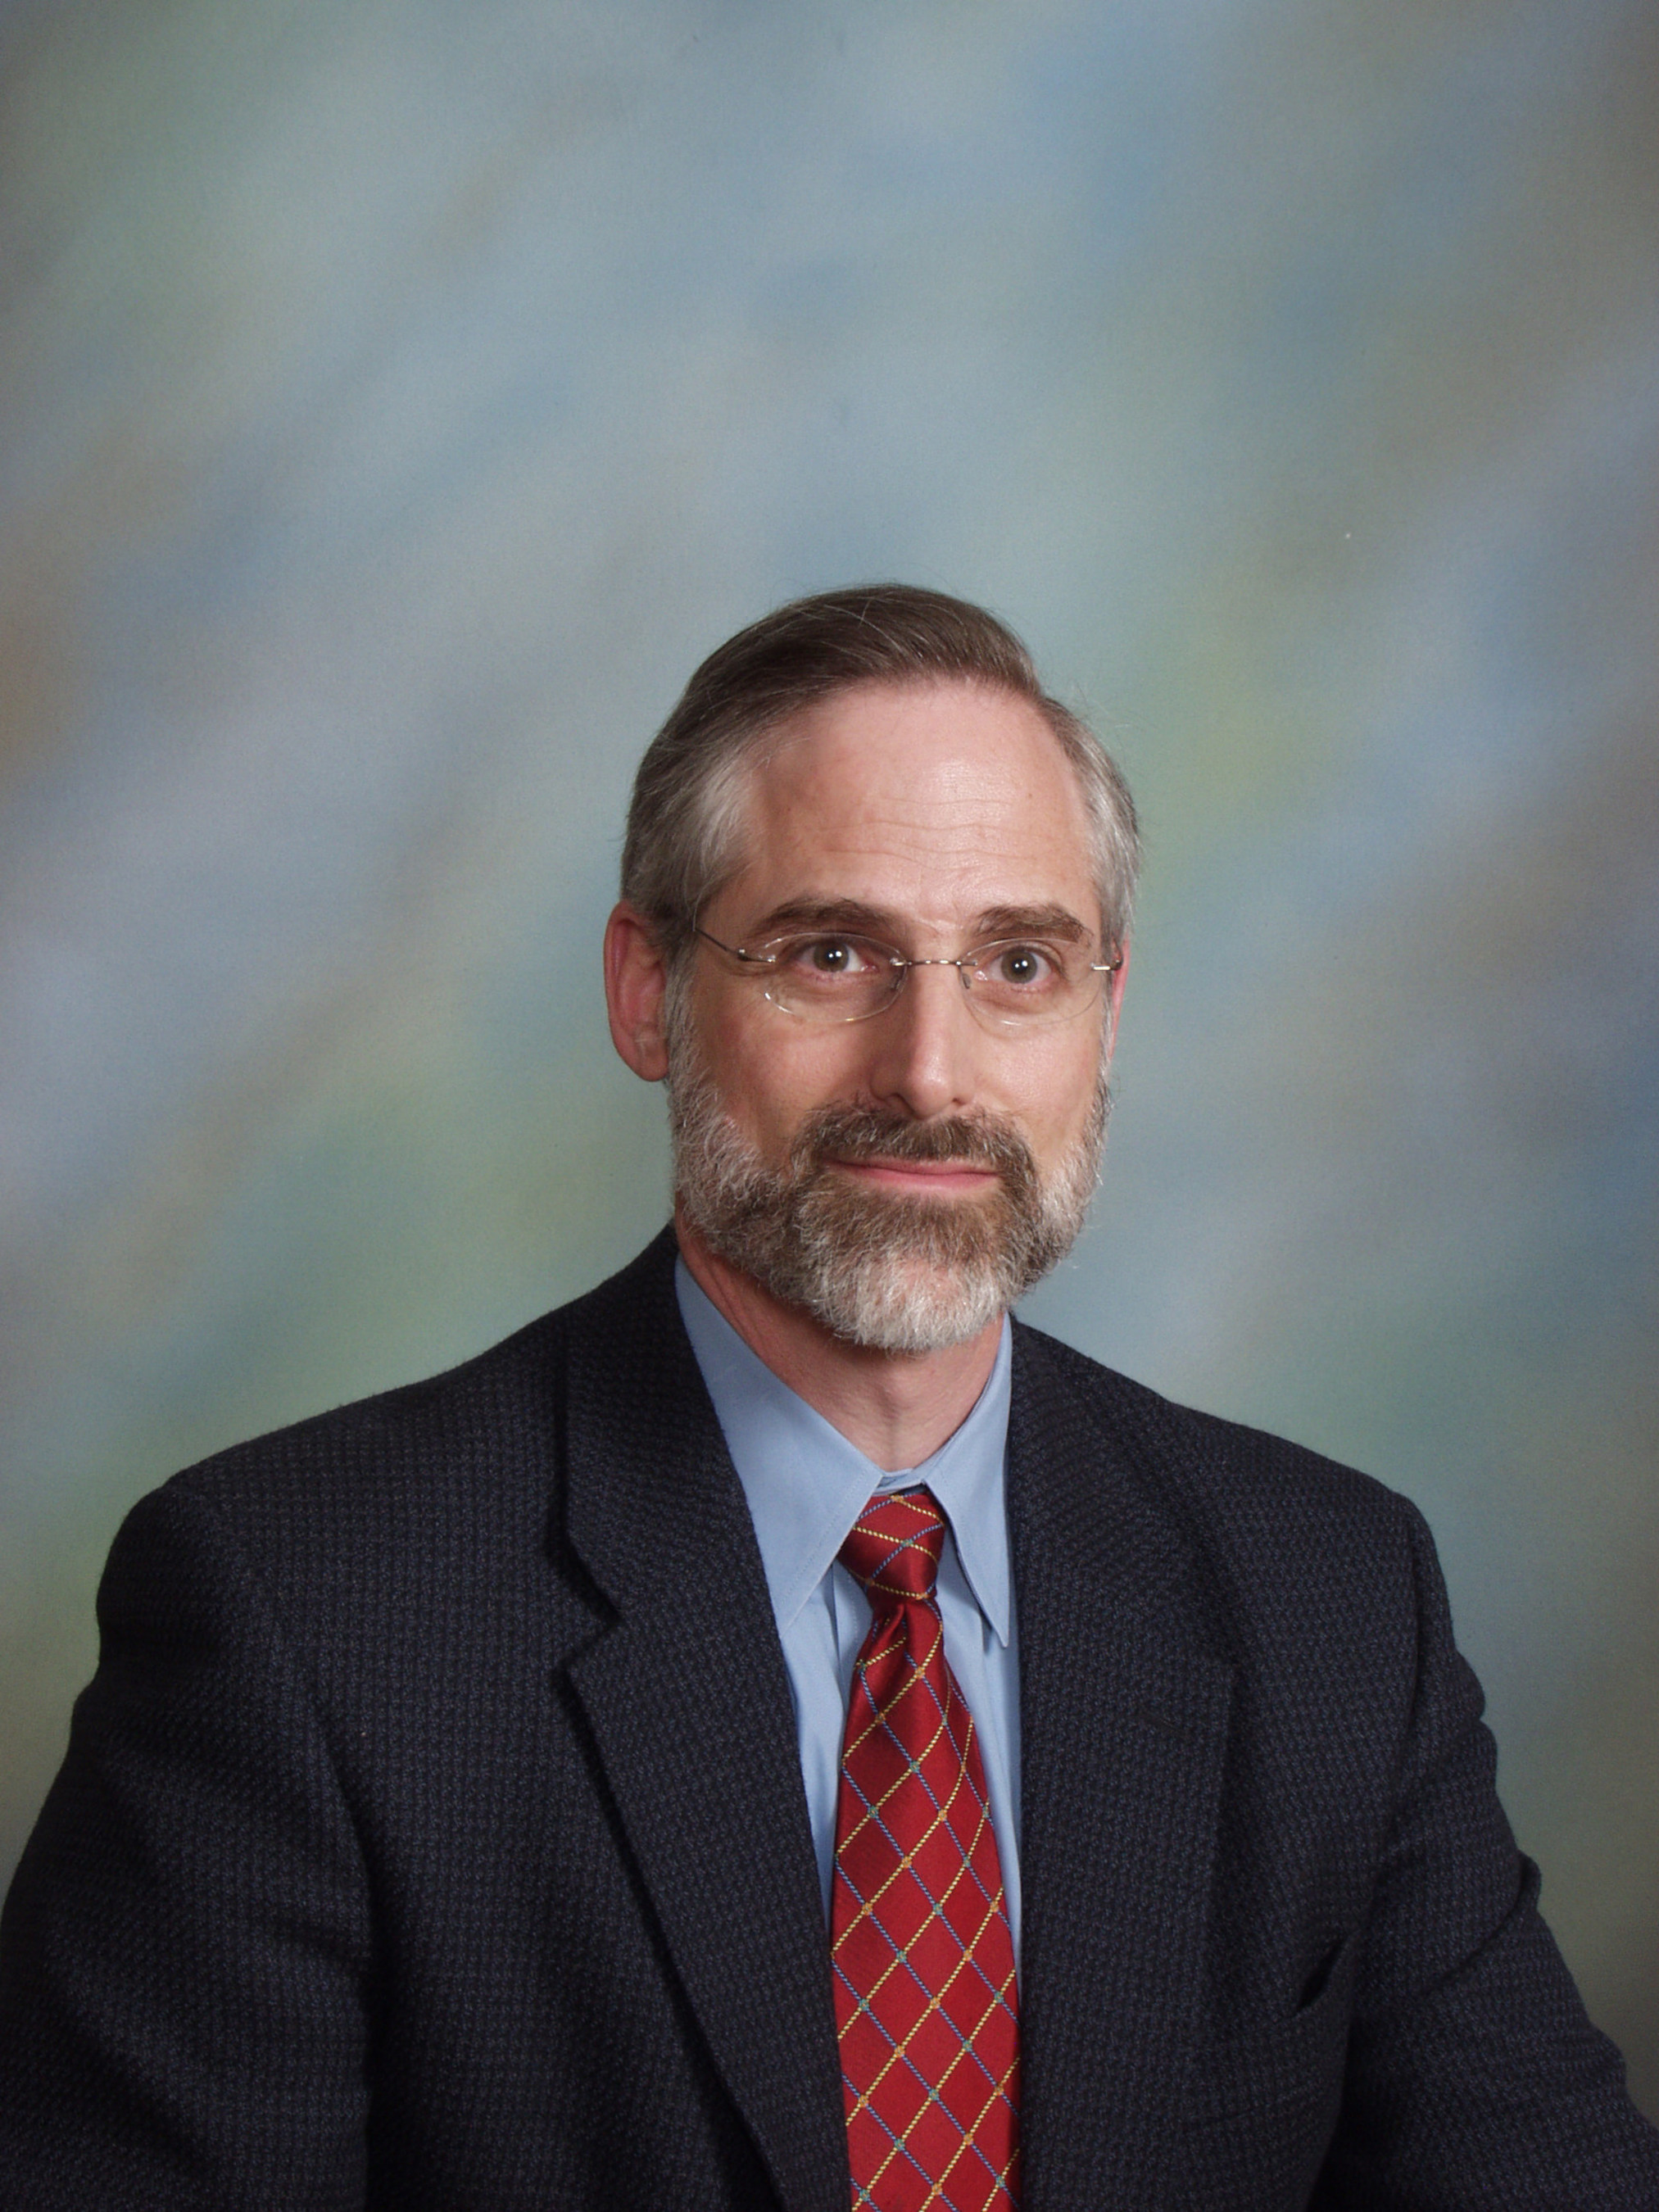 Russell Portenoy, MD, executive director of the MJHS Institute for Innovation in Palliative Care, is the recipient of NHPCO's Galen Miller Leadership Award recognizing an outstanding leader in the hospice and palliative care field.